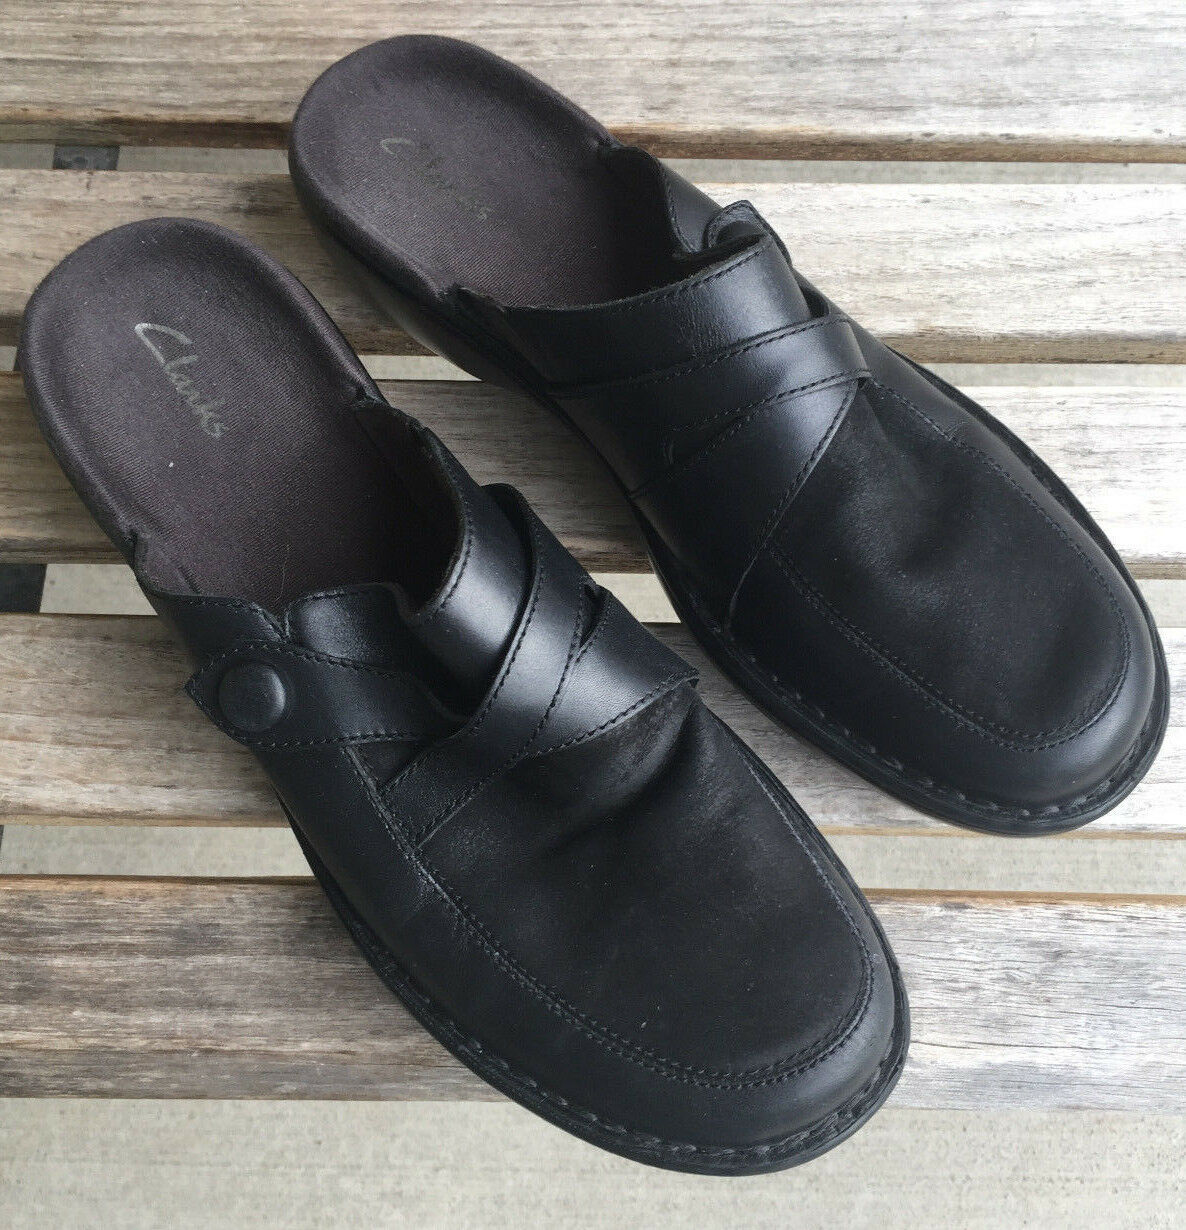 Clarks Women Black Leather/Suede Casual Slip On Closed Toe Casual Leather/Suede Mules US Size 9 M c53ece